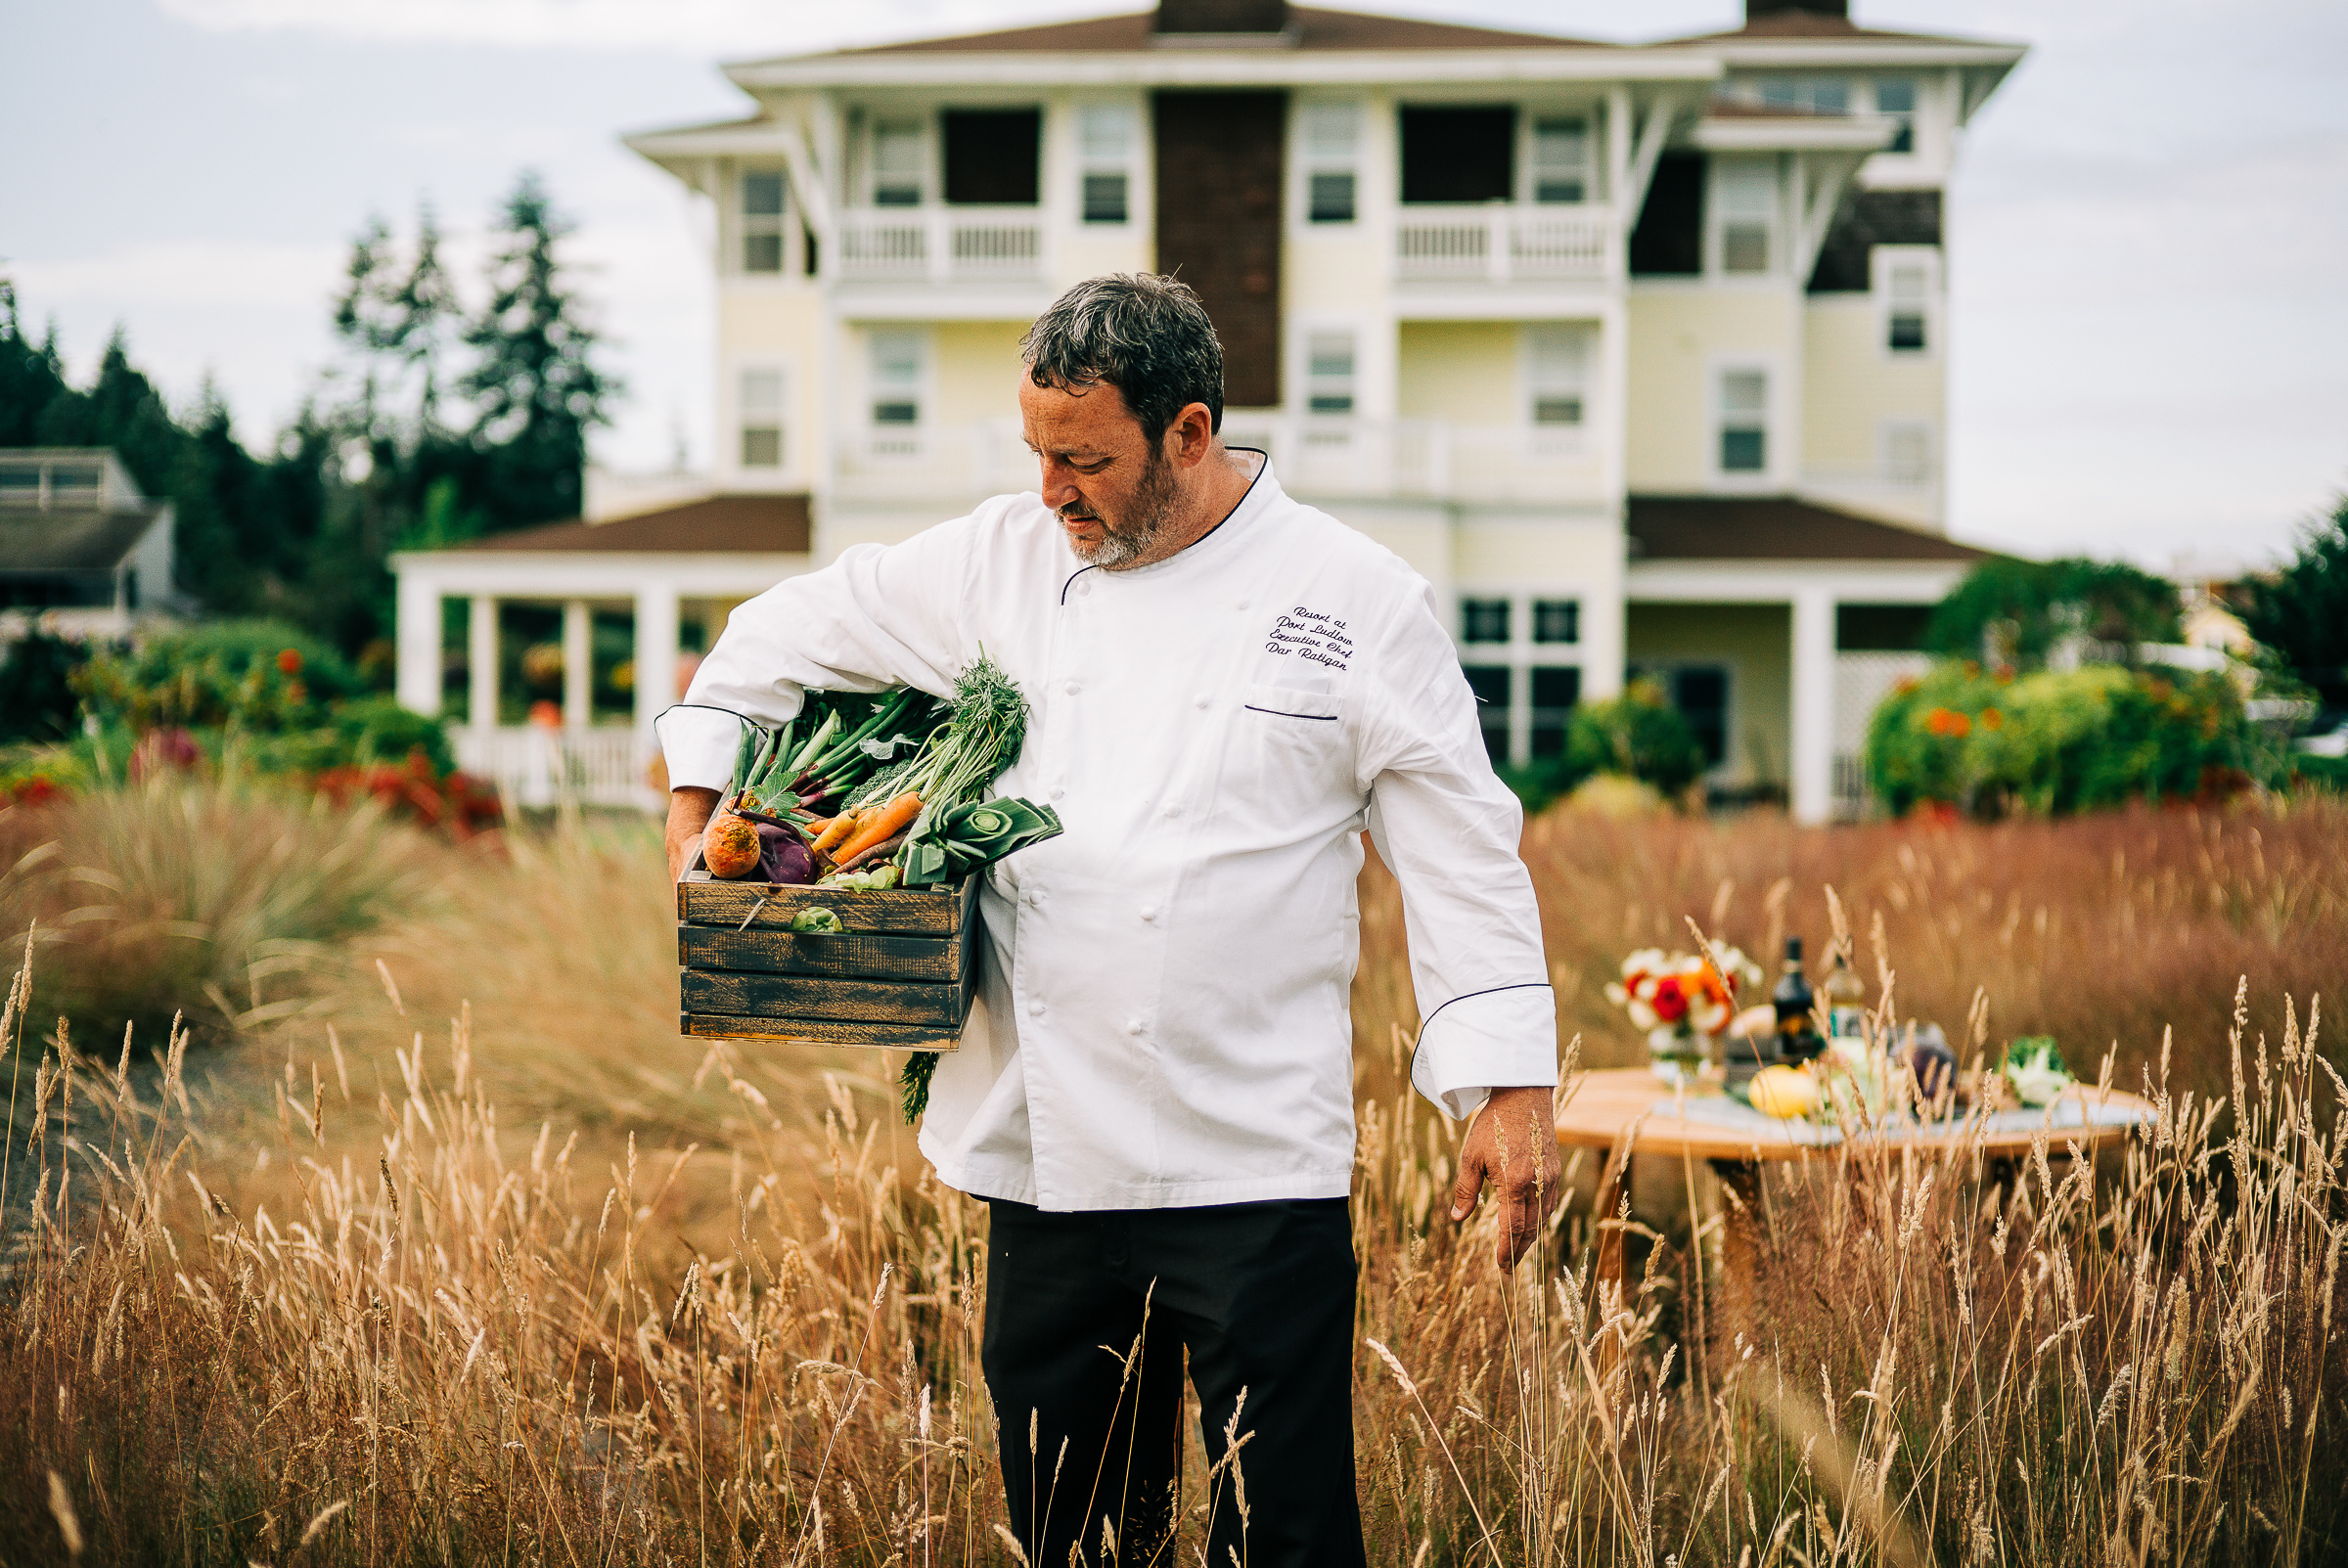 Experiece Port Ludlow, WA - Element Creative Agency - Commercial Photography -62.jpg